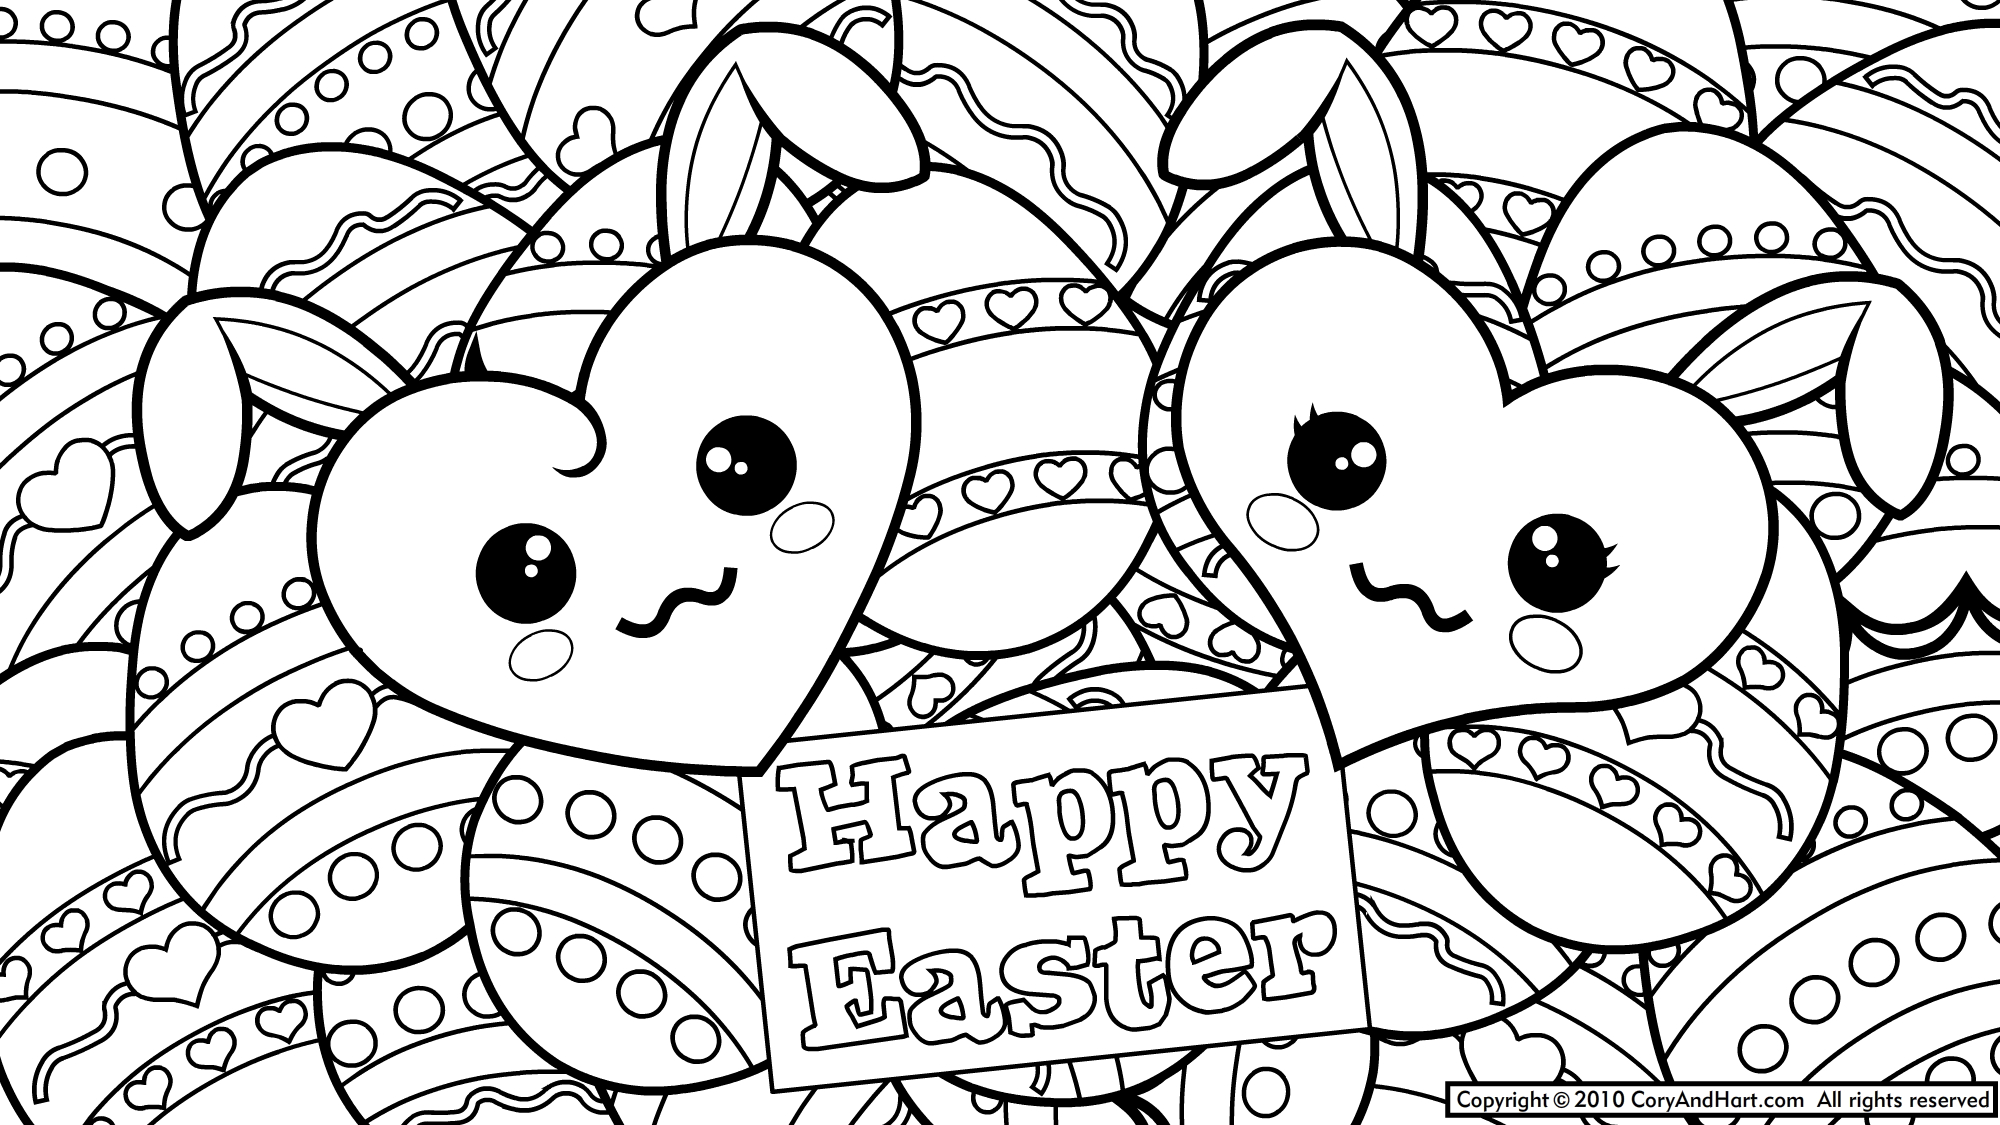 - 21+ Awesome Image Of Printable Easter Coloring Pages - Birijus.com